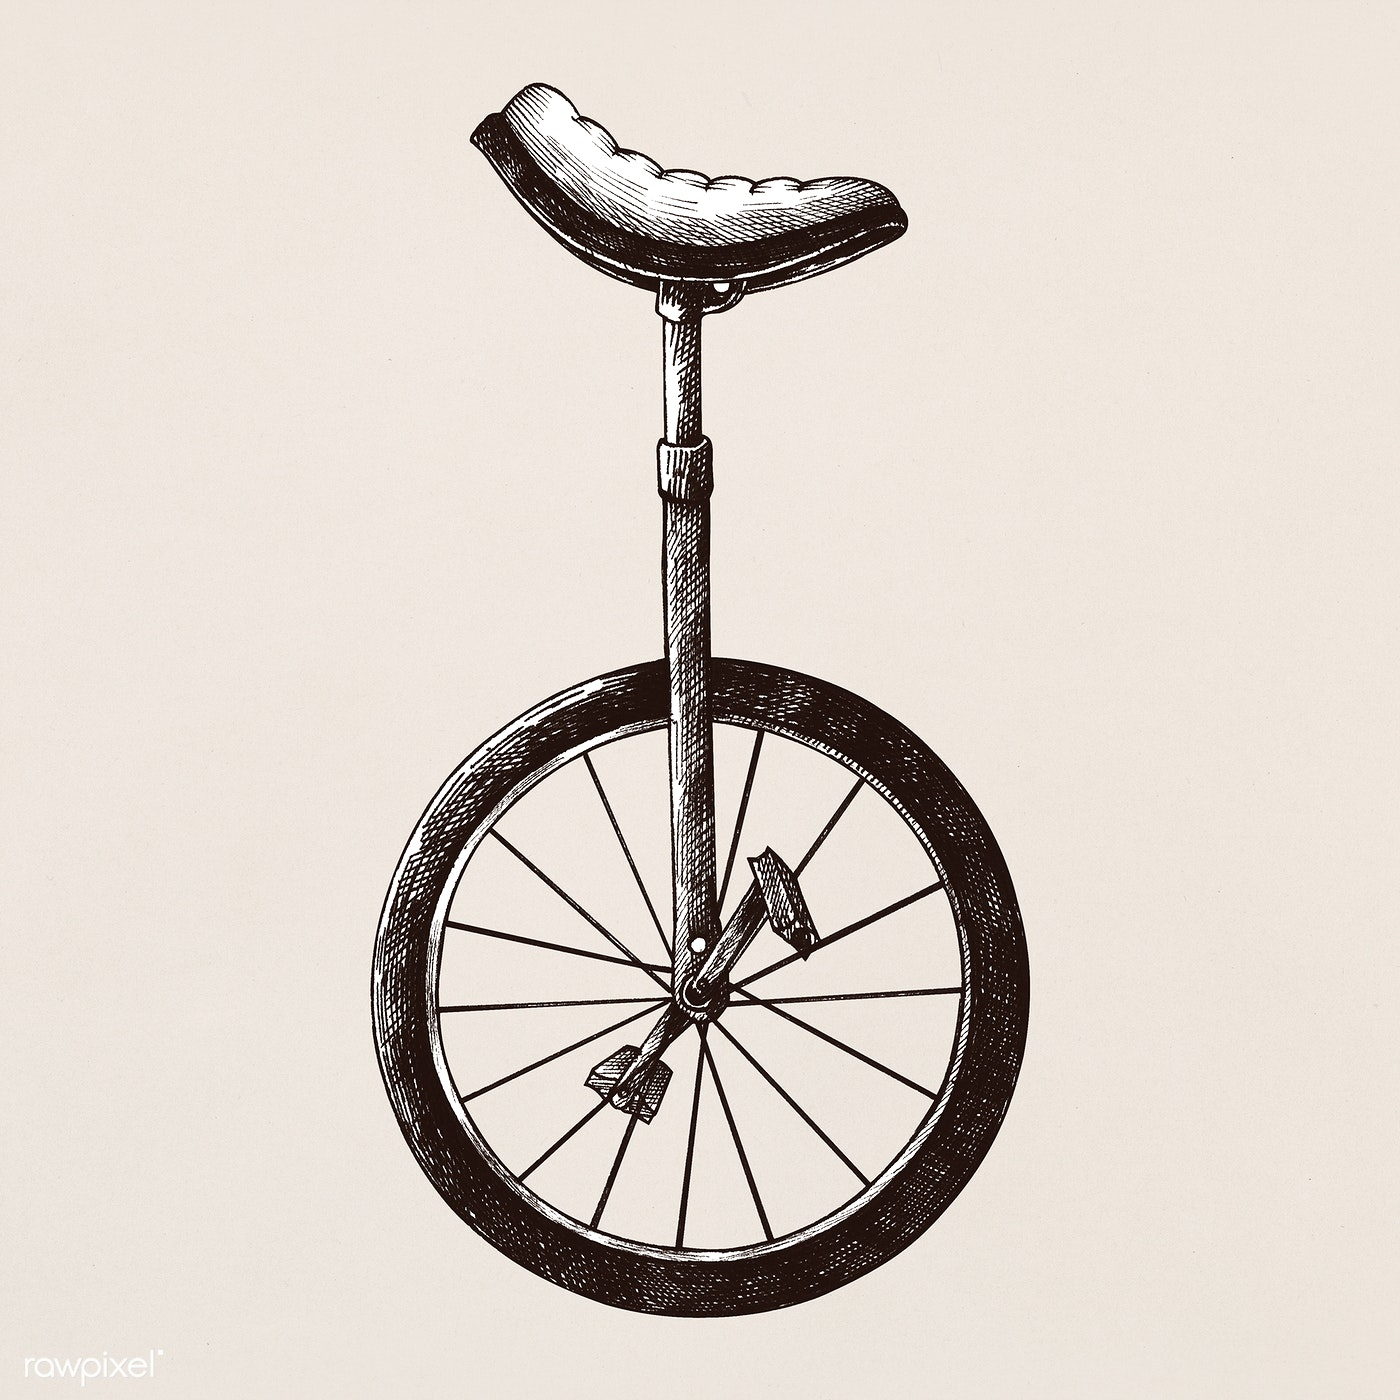 svg freeuse library Download premium illustration of. Unicycle drawing vintage